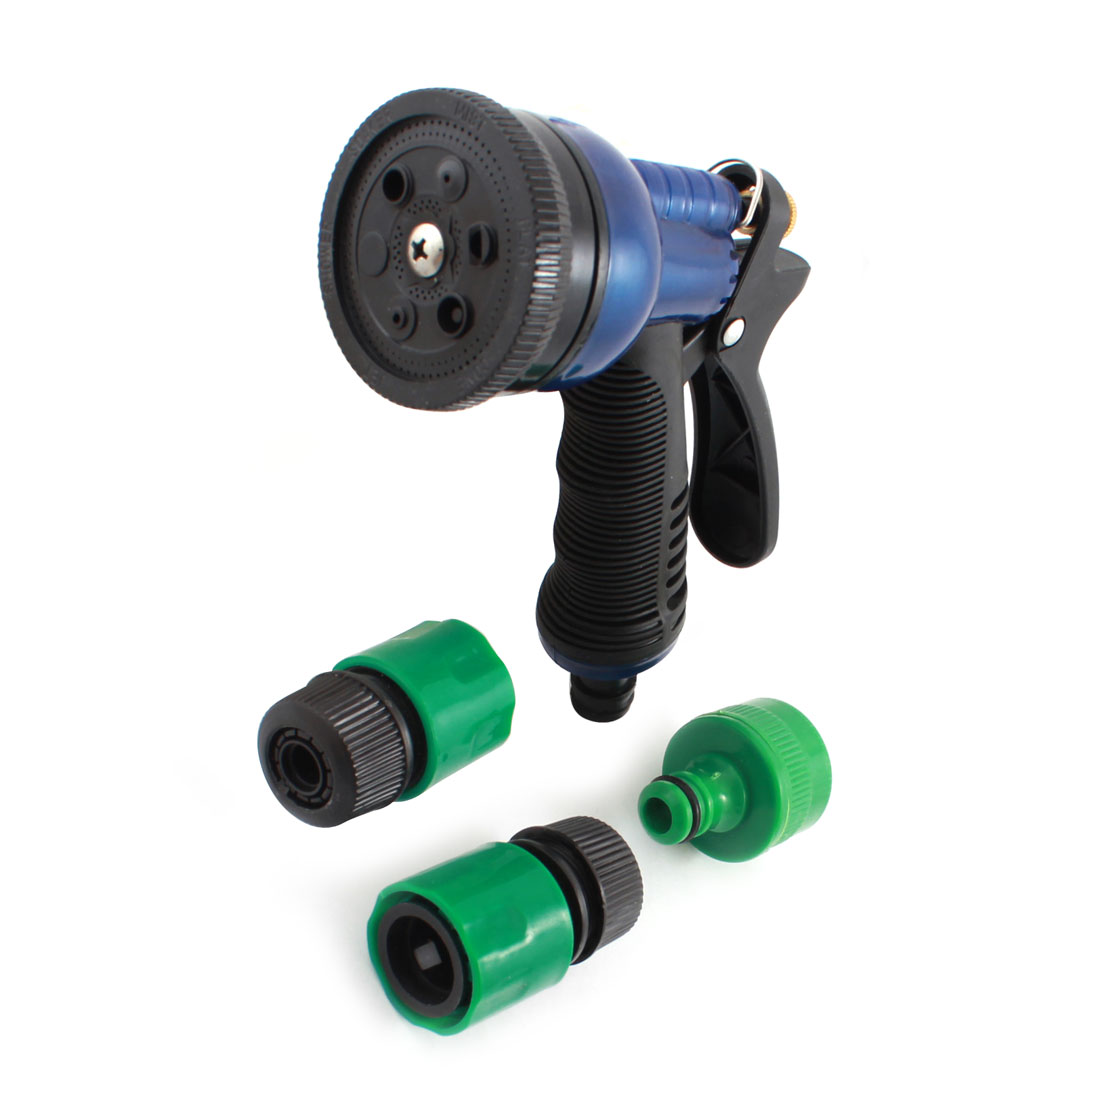 Garden Watering Car Washing Push Trigger Plastic Hose Spray Nozzle Gun Black for 9mm Hose